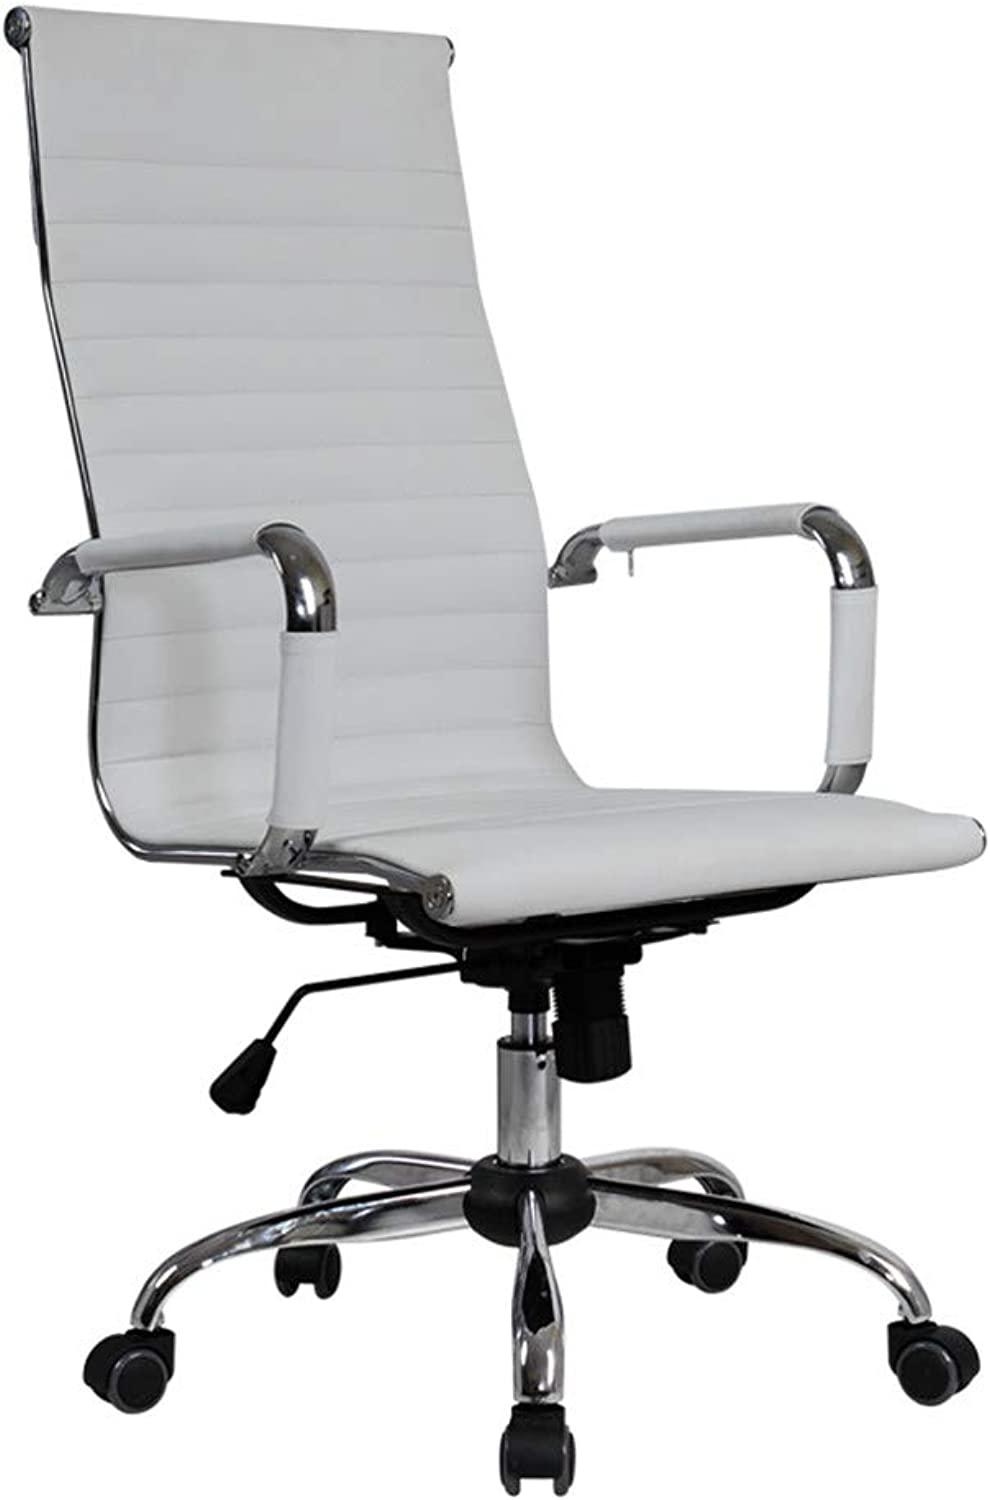 Nesee 360 Degree Swivel Office Chair Leather Desk Gaming Chair with Massage Function Adjust Seat Height Bench Bar Chair Home Computer Network Chair (Ship from US) (White)